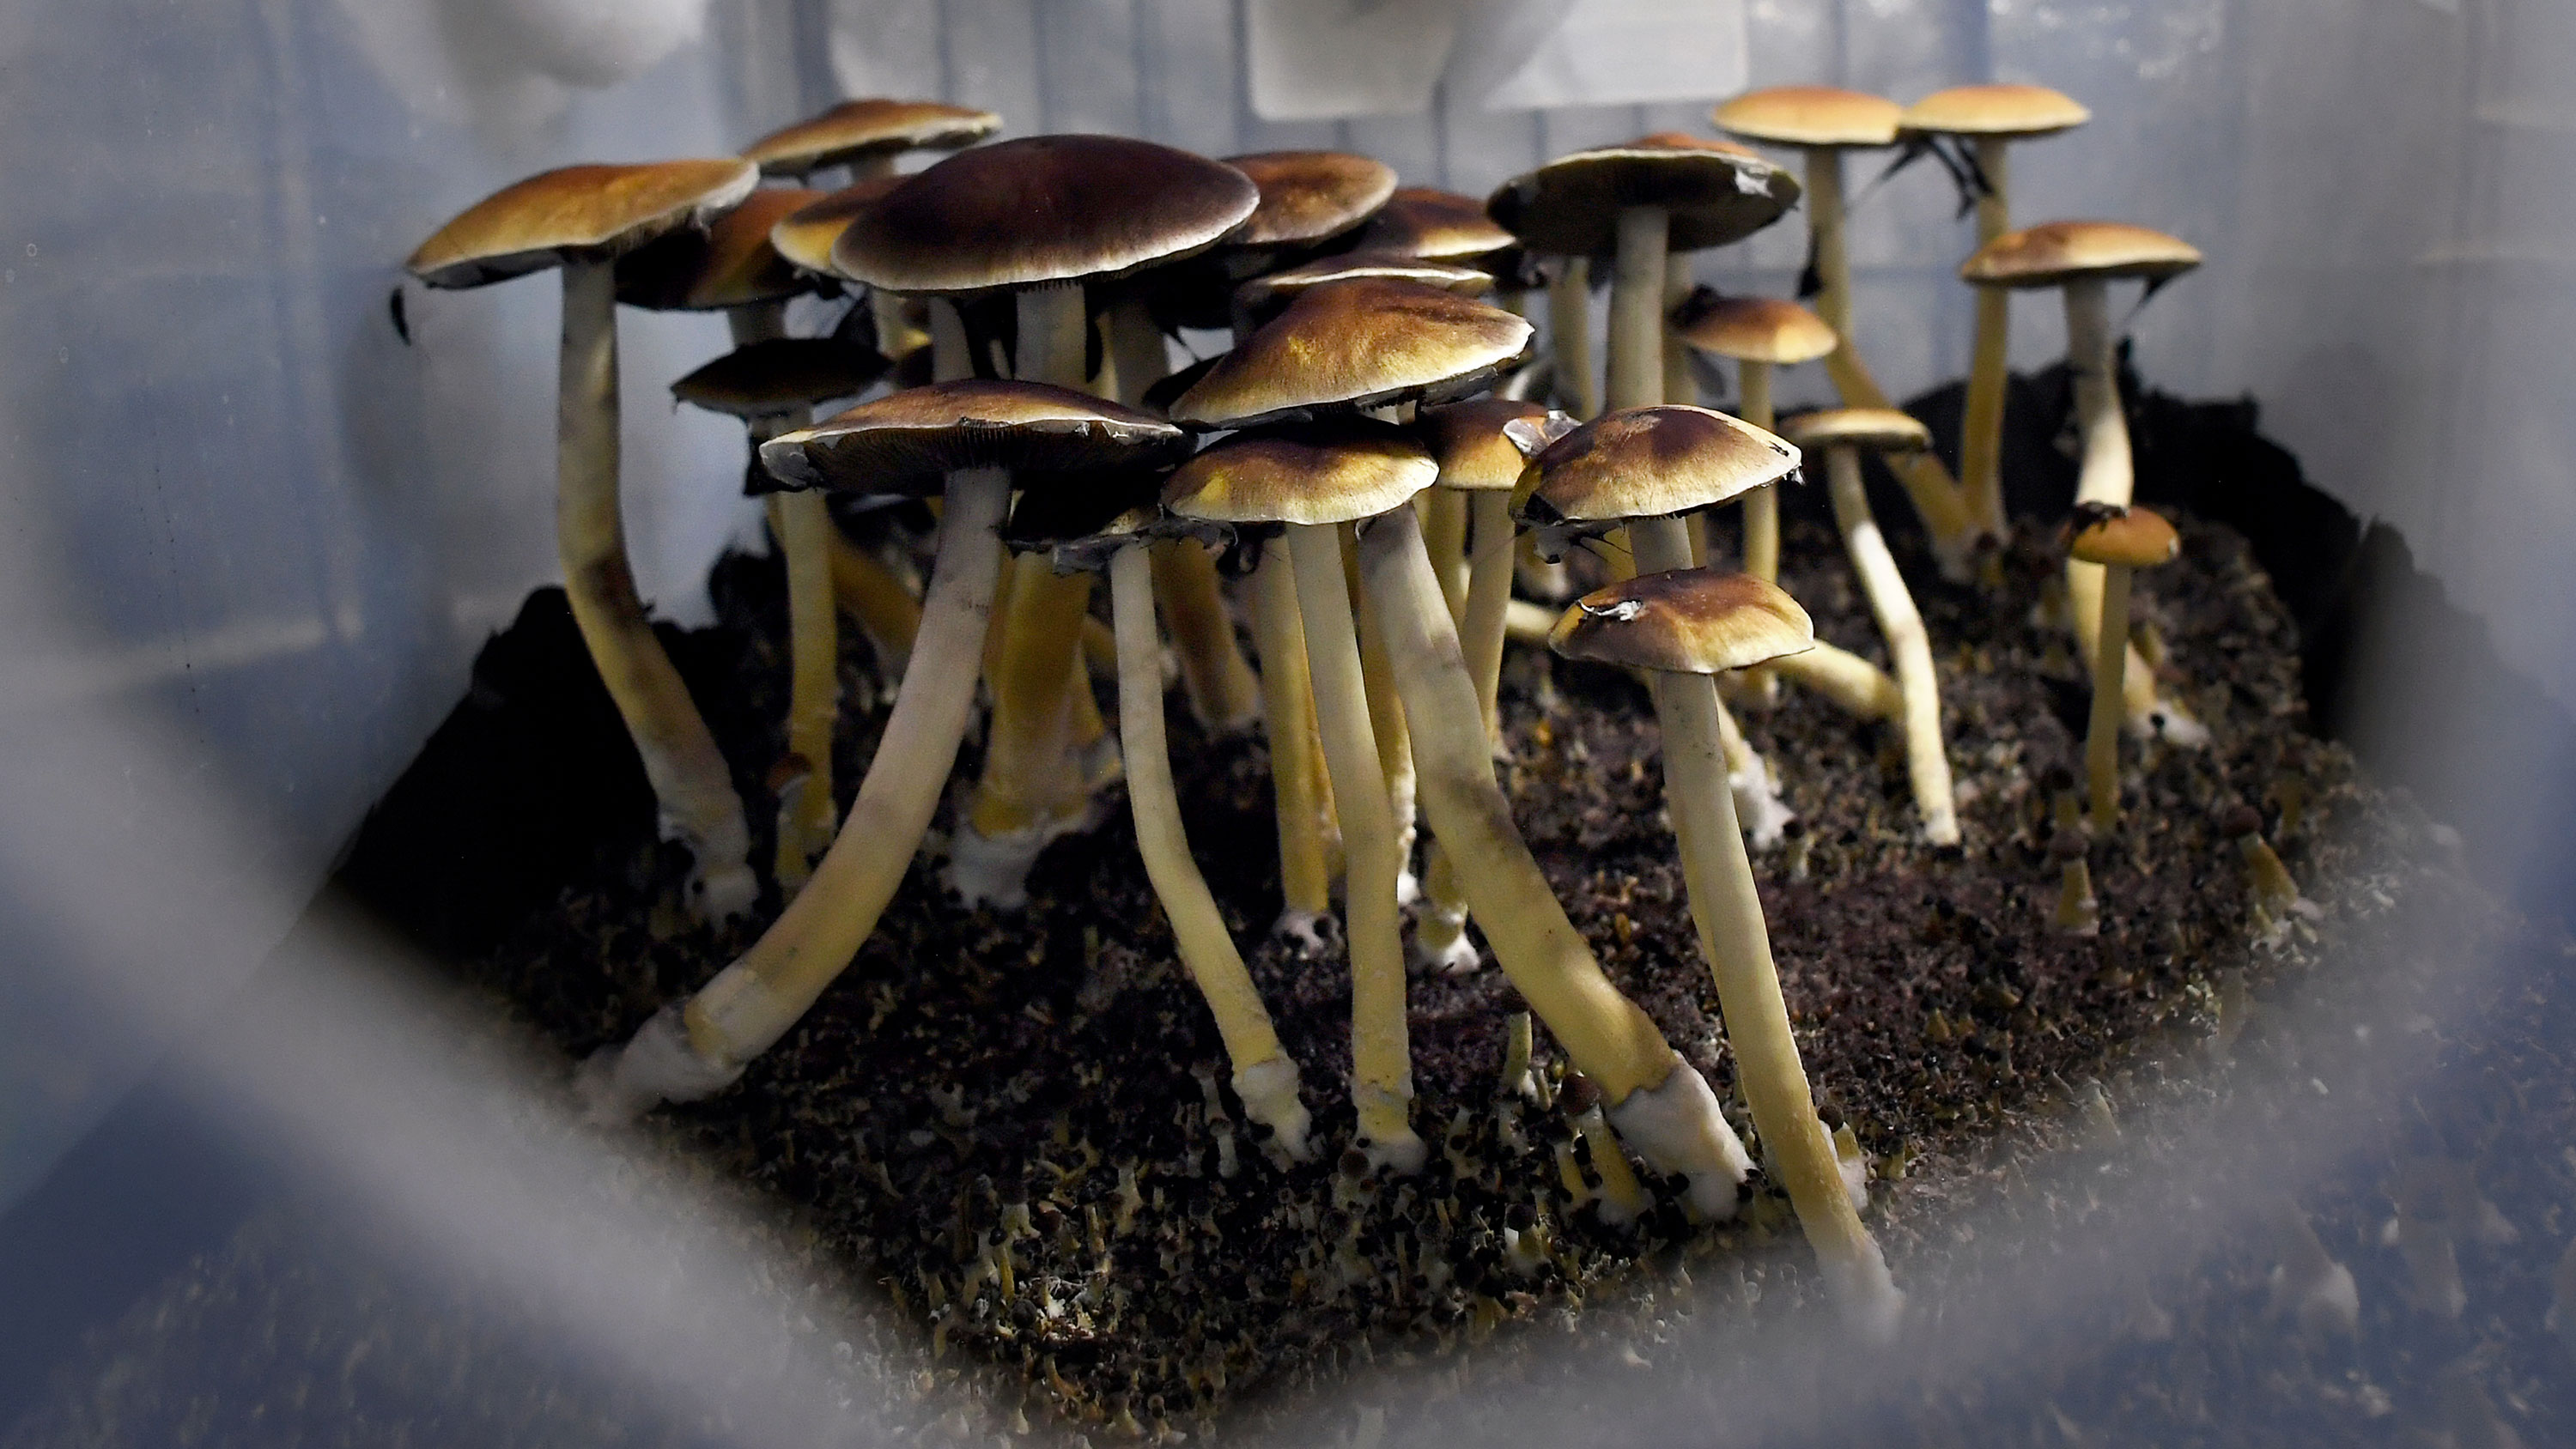 The Canadian government is allowing 4 terminally ill patients to use psychedelic mushrooms to help ease their anxiety